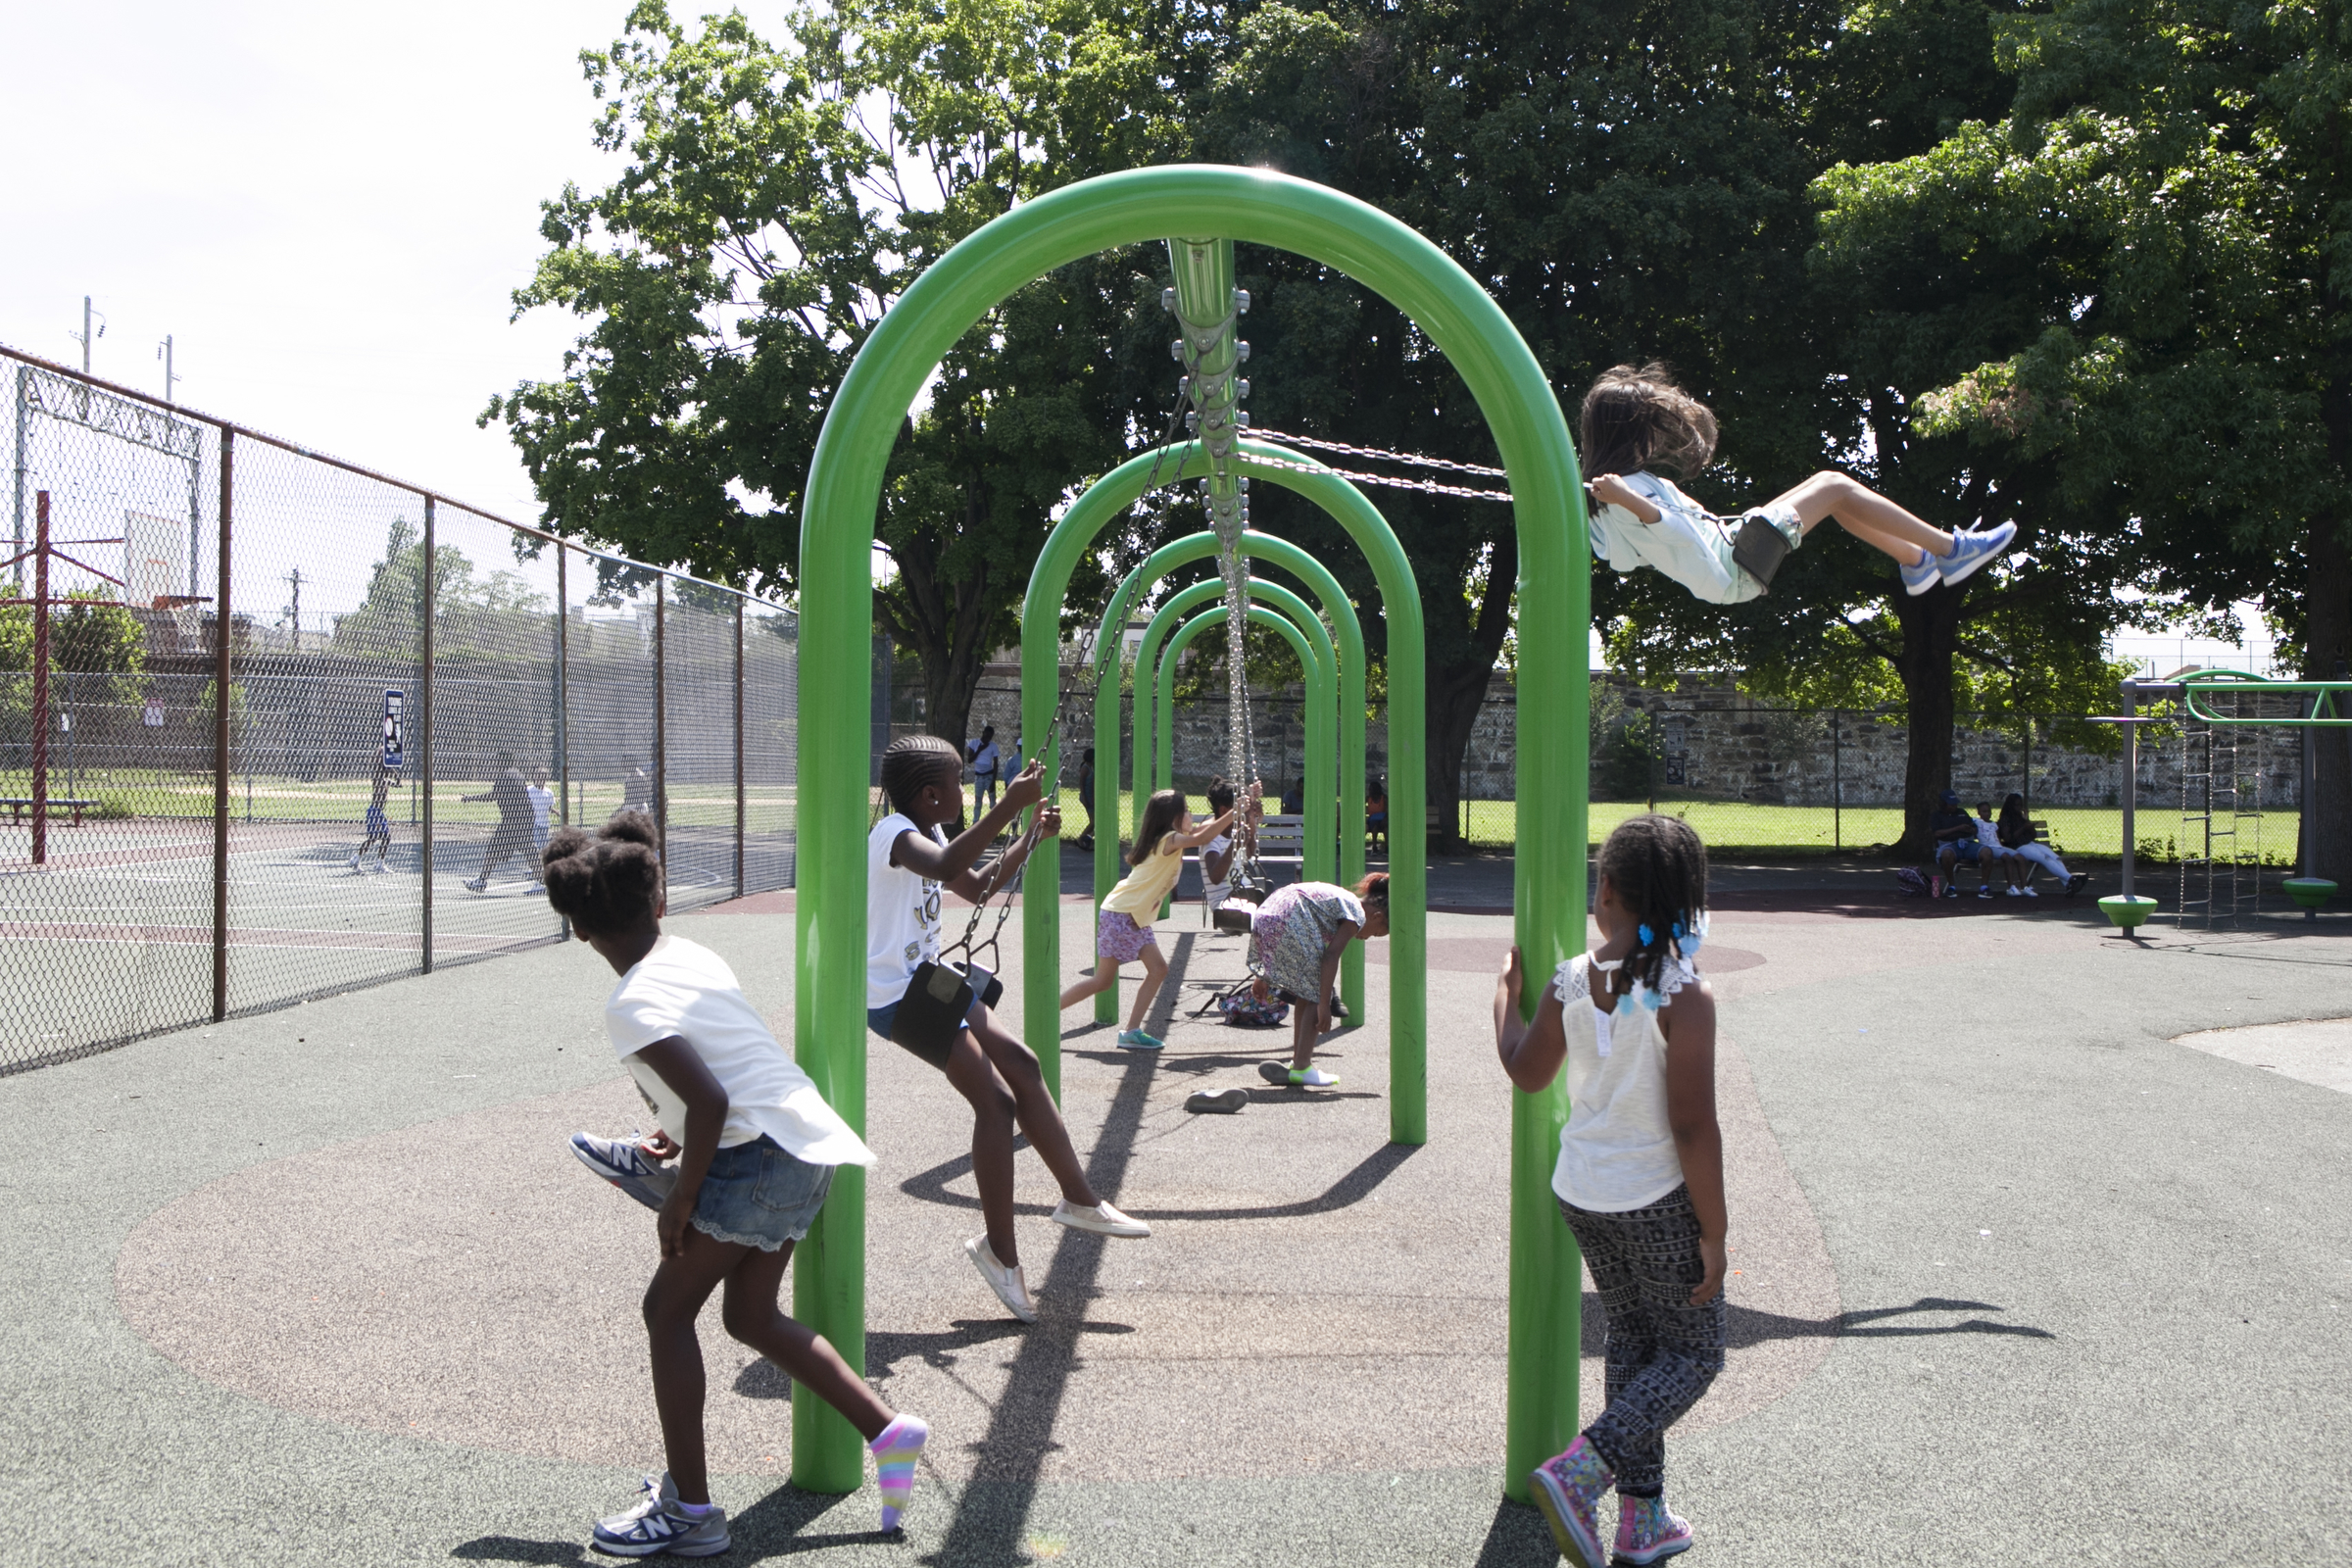 Camp kids play on the swings on the morning of June 29. | Maggie Loesch for PlanPhilly